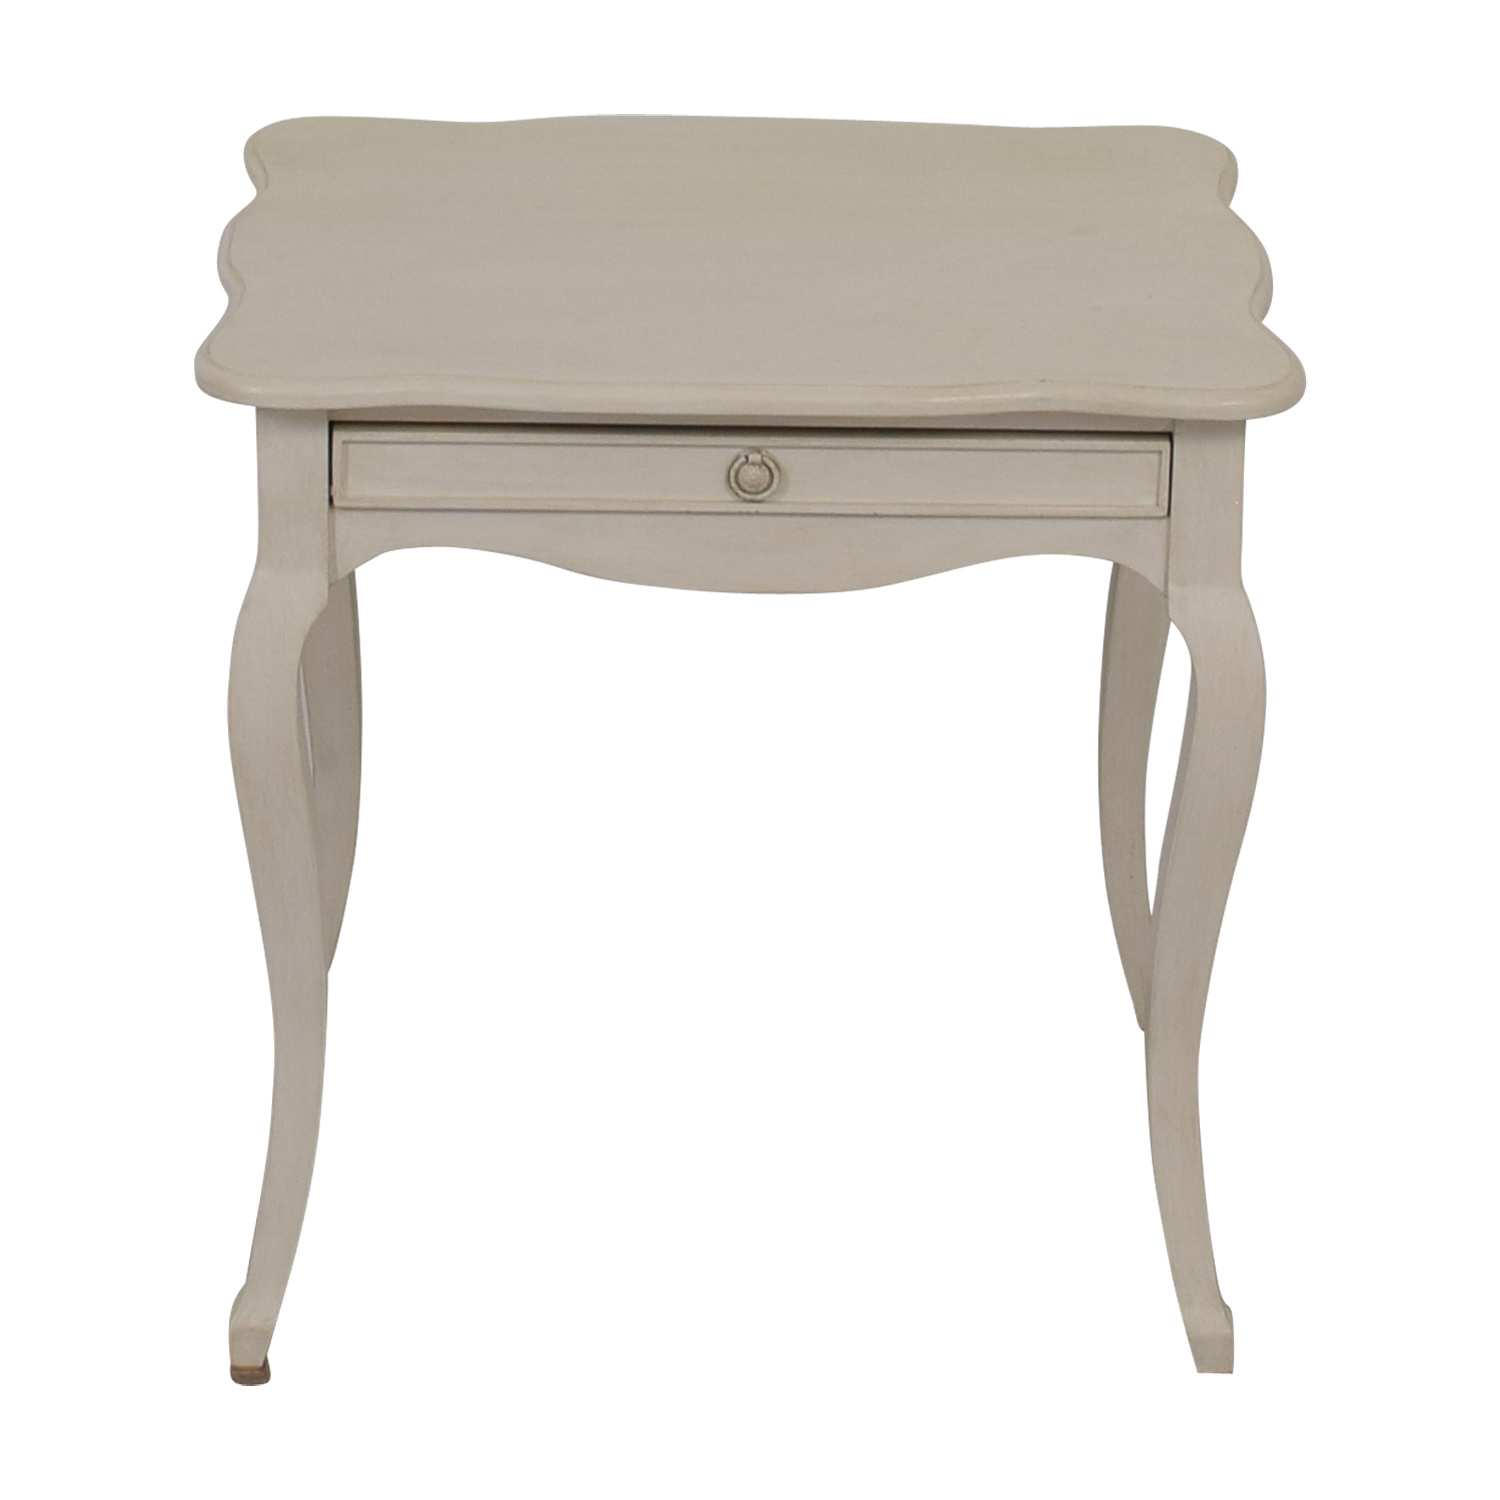 Off White Single-Drawer Night Table